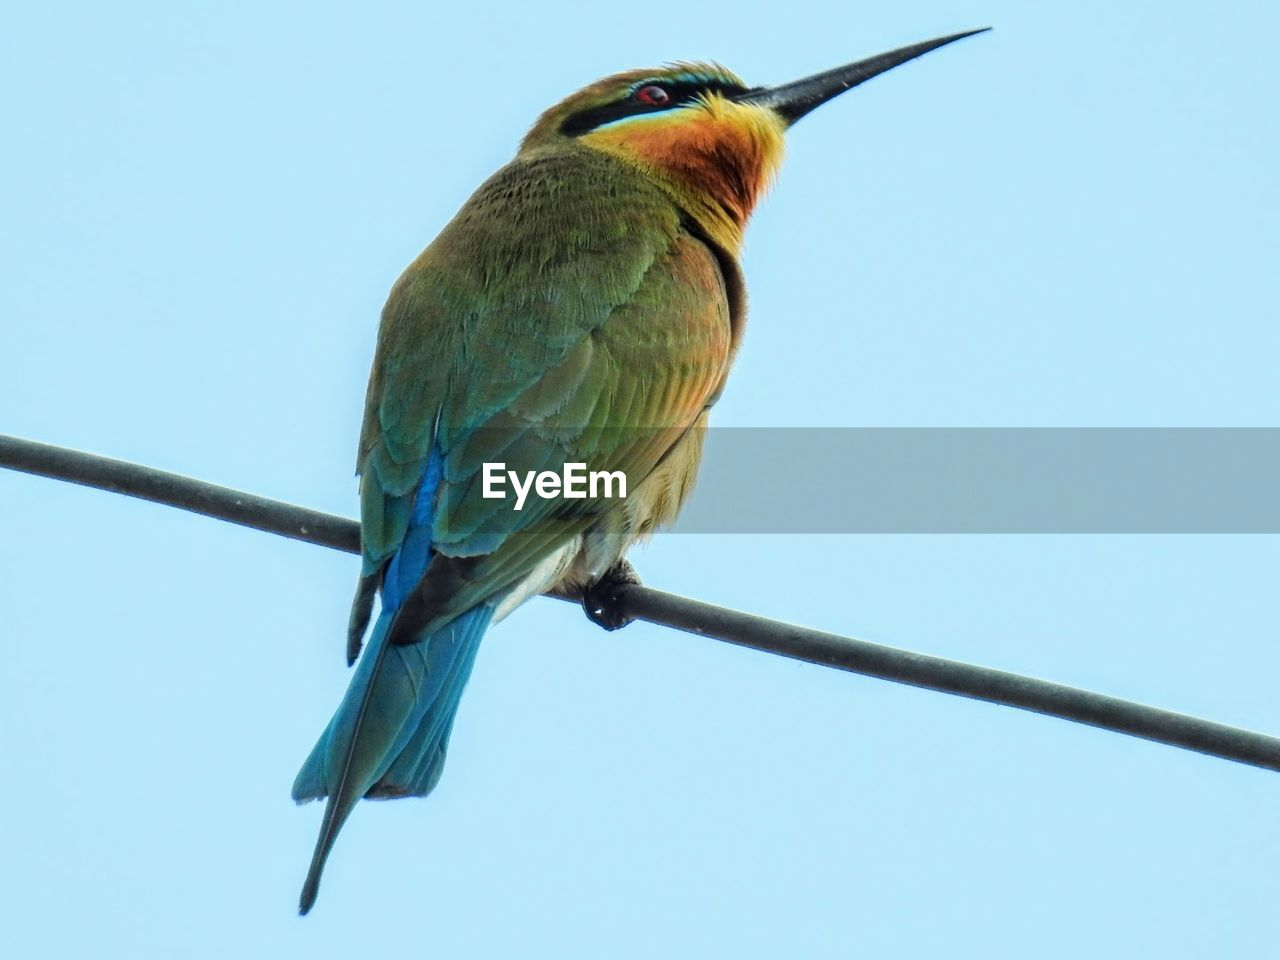 bird, one animal, animals in the wild, perching, animal themes, blue, clear sky, animal wildlife, kingfisher, cable, day, no people, outdoors, nature, close-up, sky